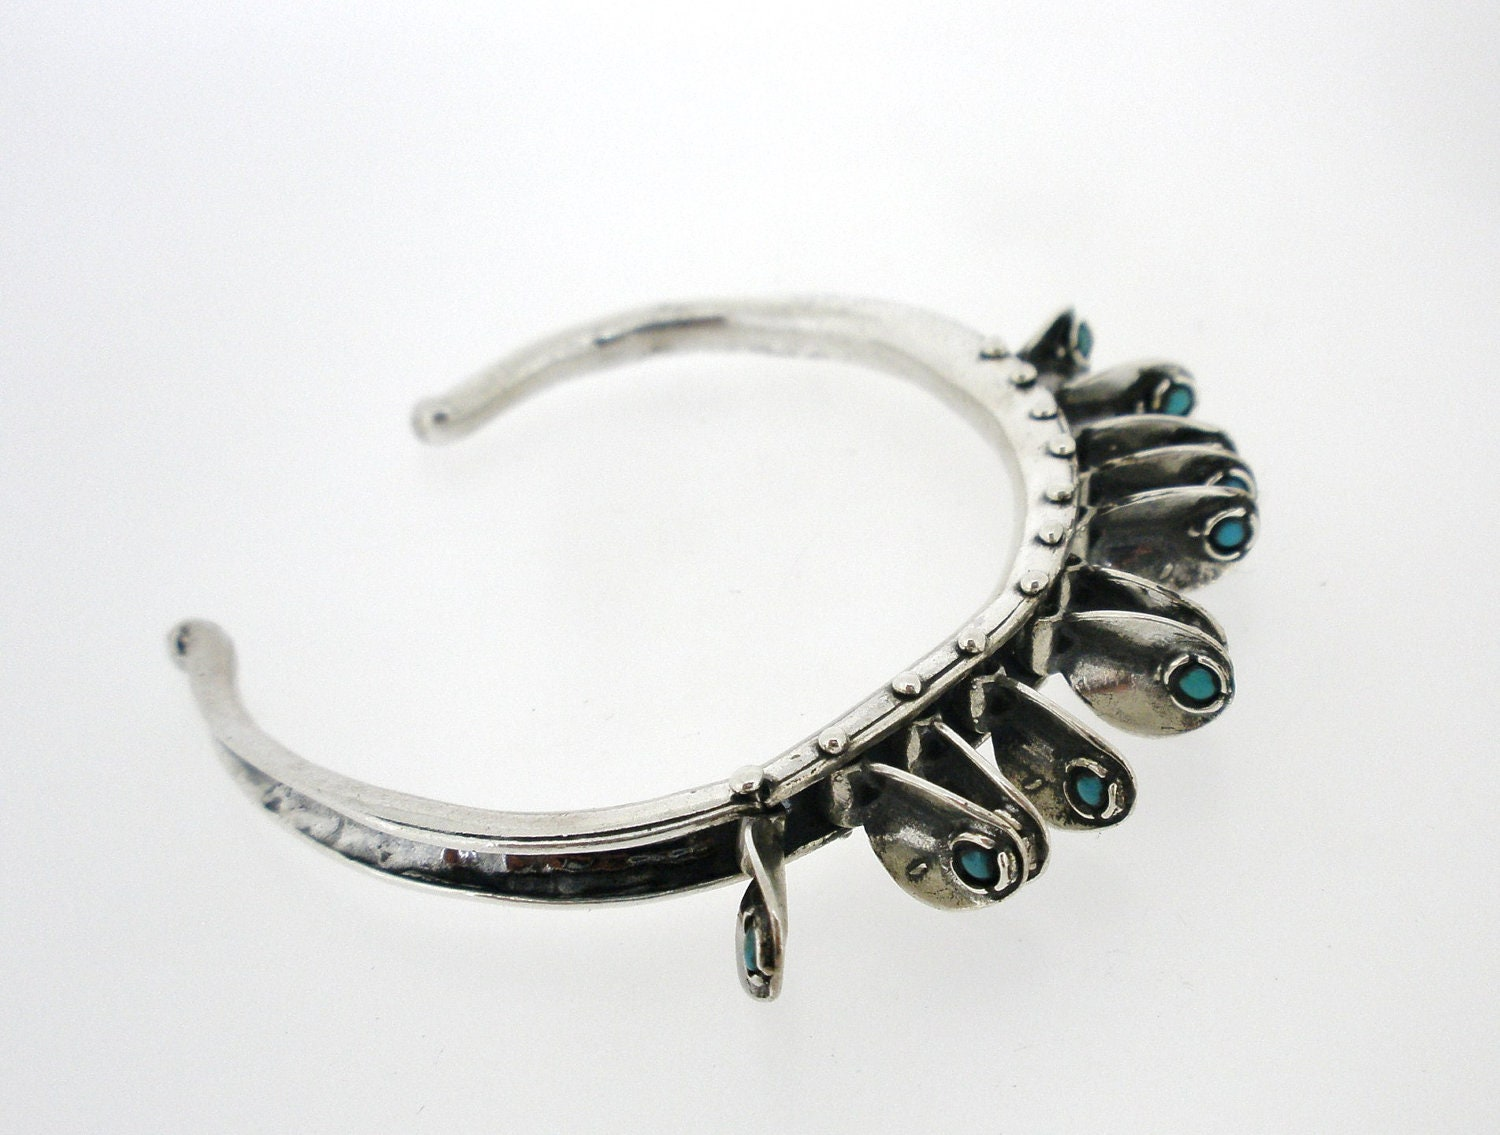 Ready To Ship Handcrafted 925 Sterling Silver Bracelet, Opal, Unique Design by Poran, Made In Israel